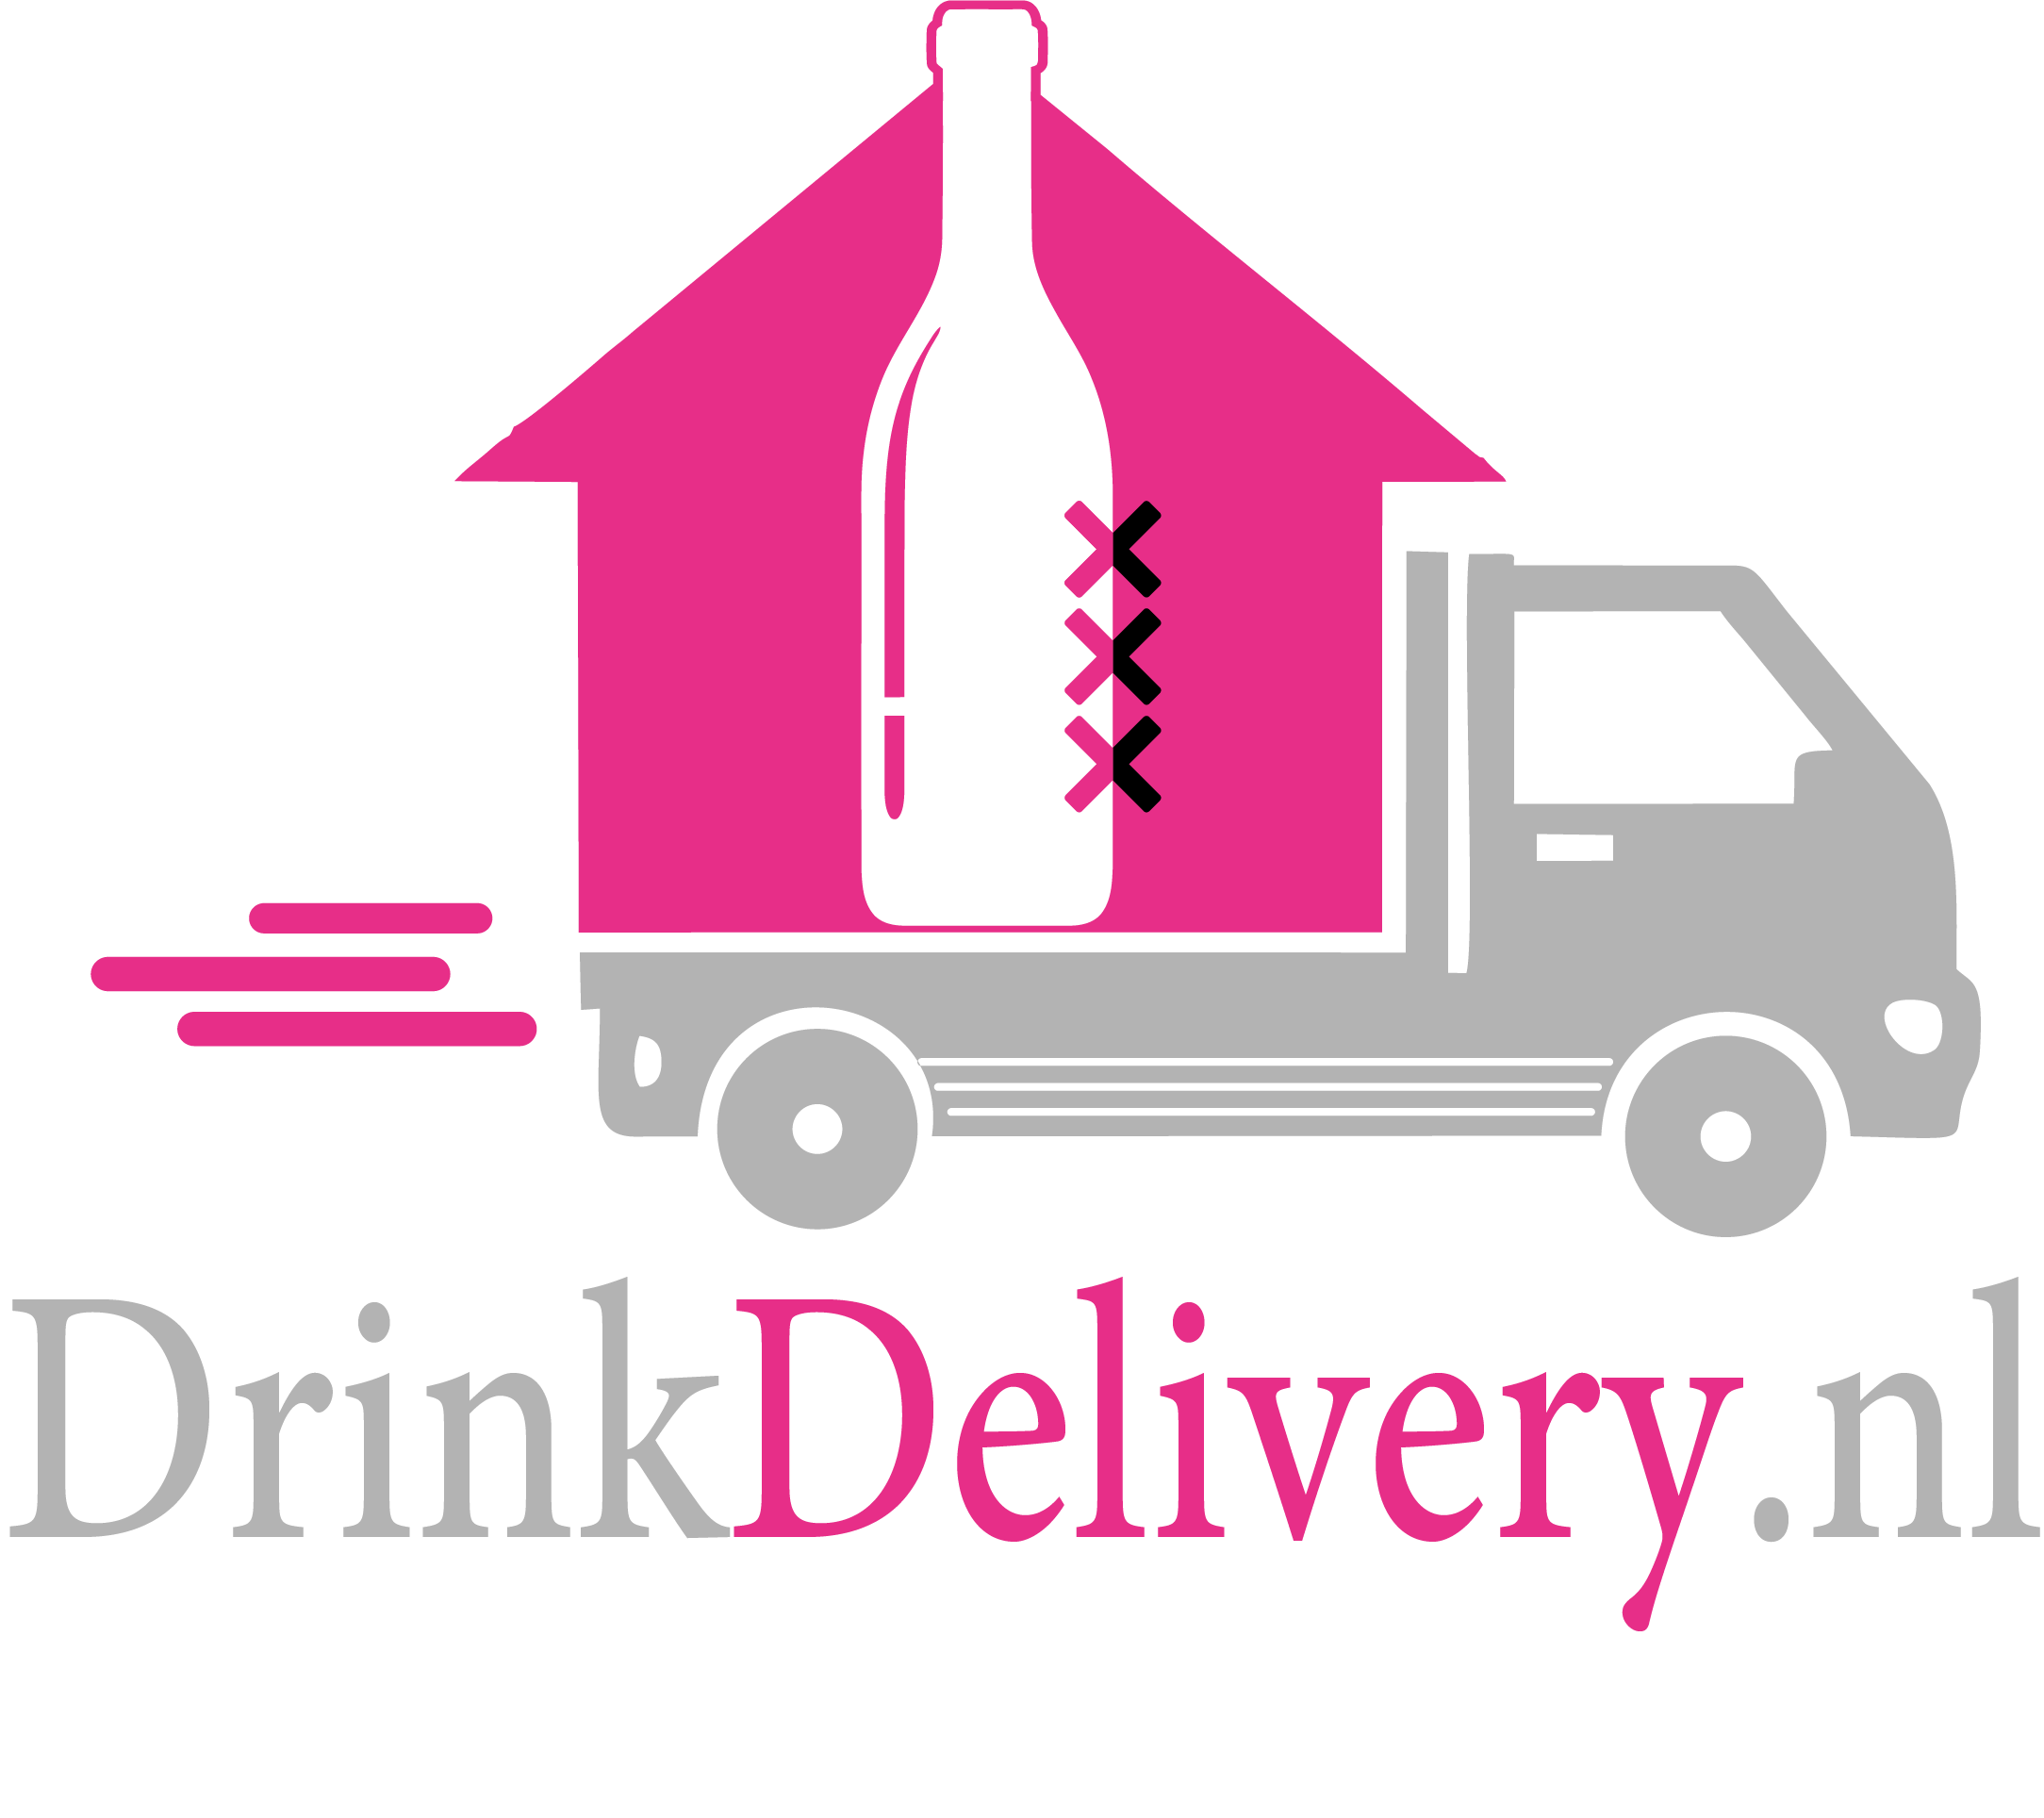 Drink Delivery